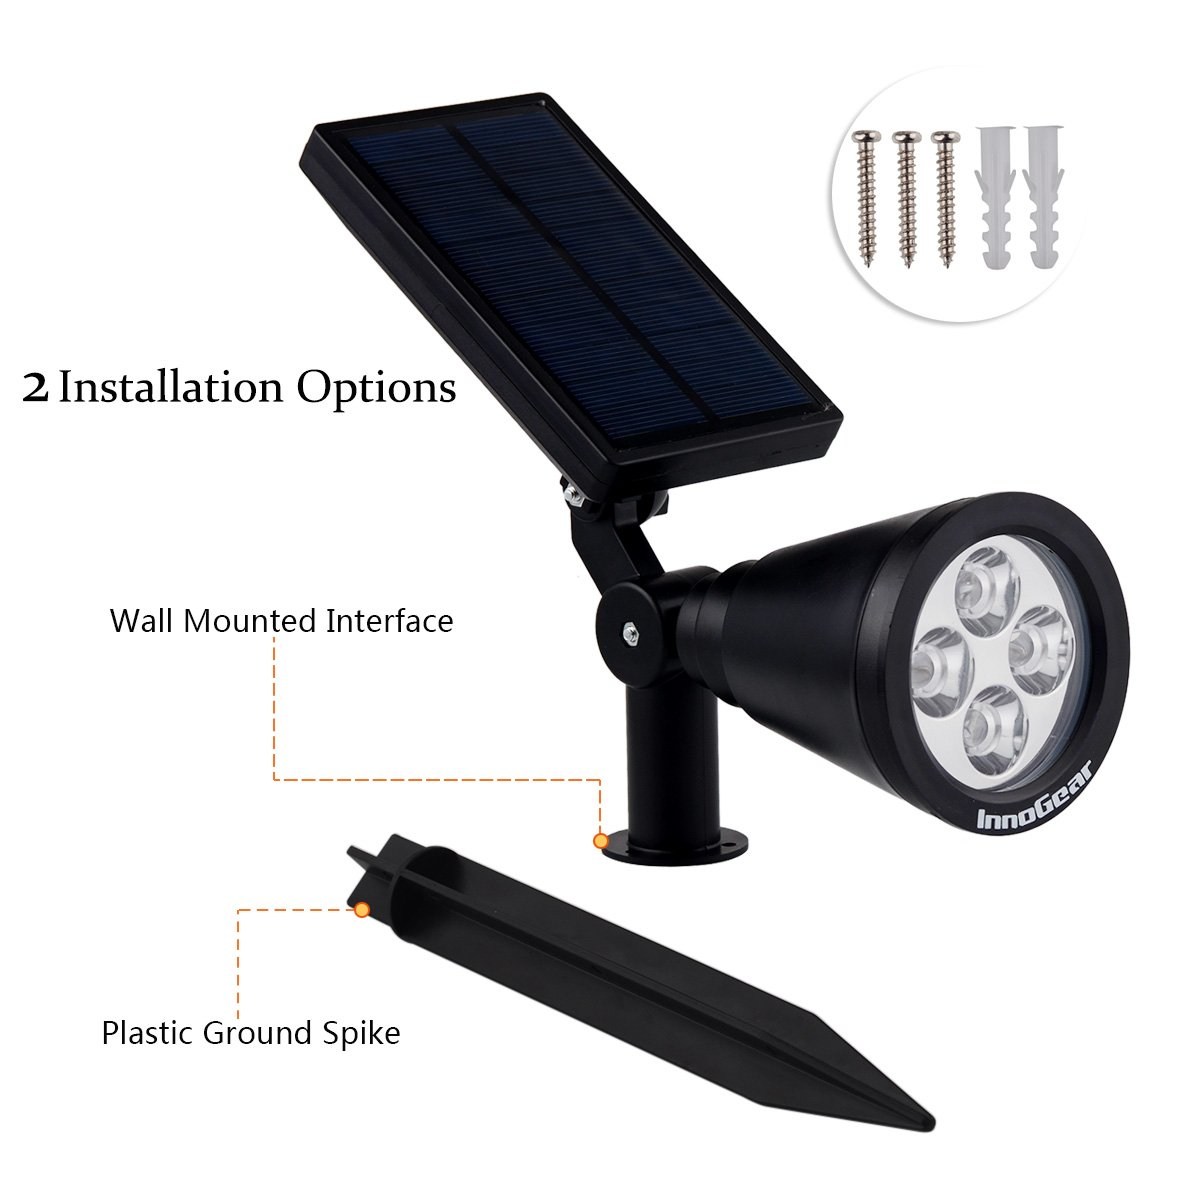 innogear upgraded solar lights 2in1 waterproof outdoor landscape lighting spotlight wall light auto onoff for yard garden driveway pathway pool